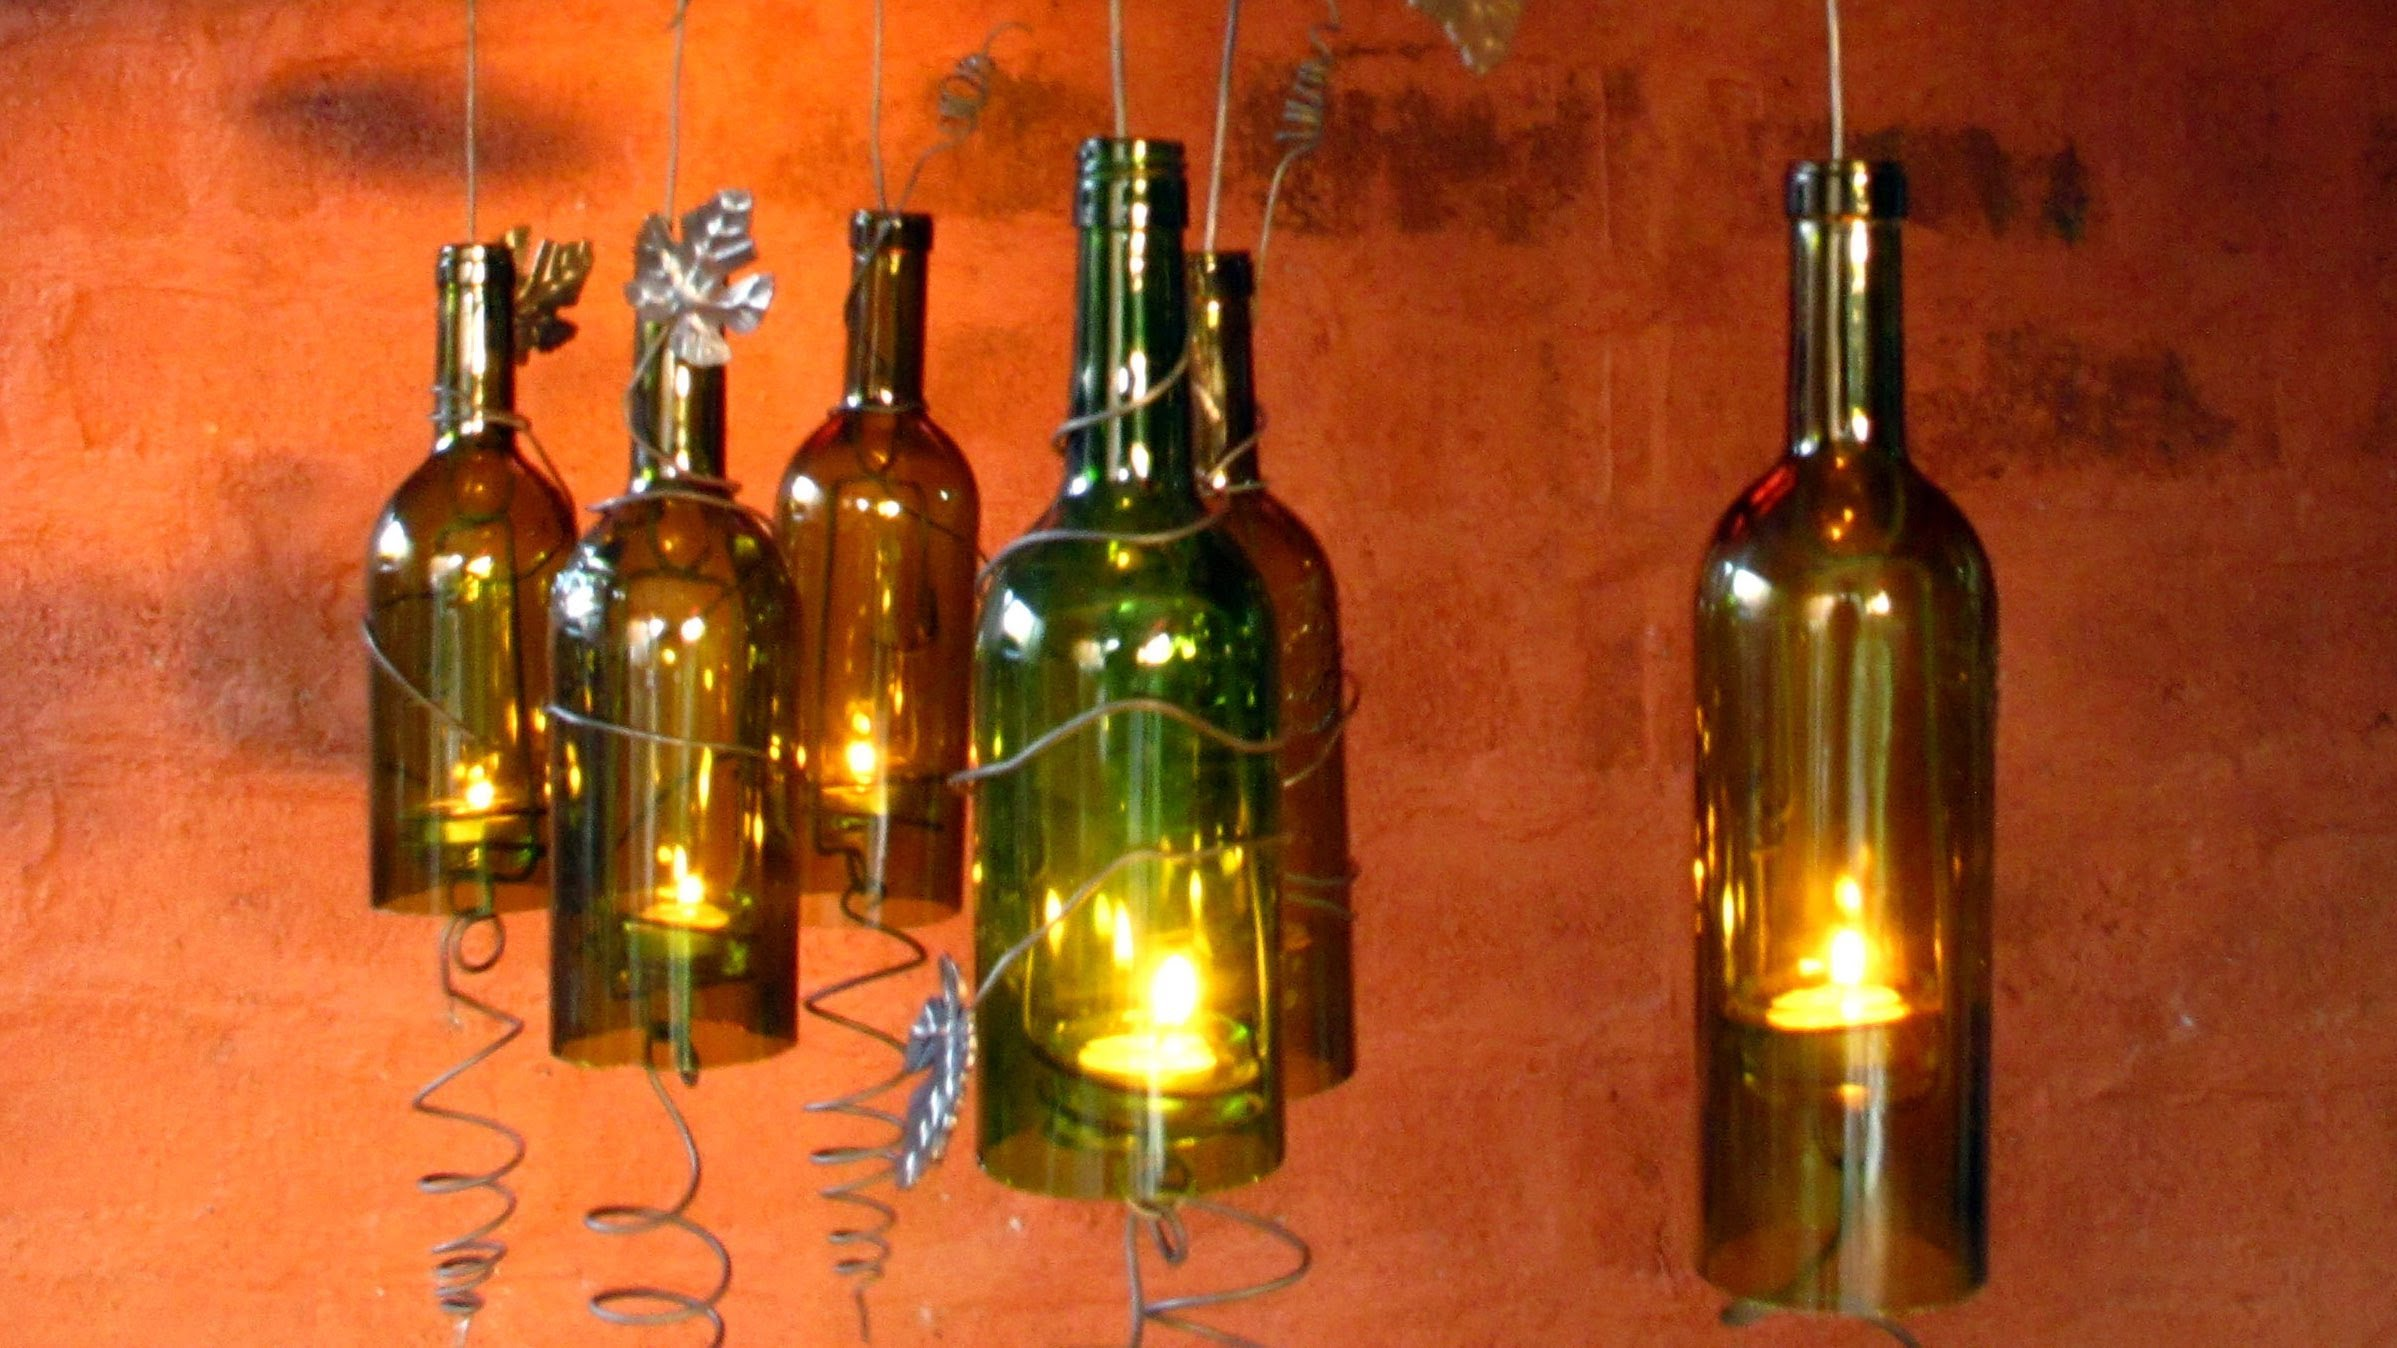 Kerzenhalter Weinflasche Diy: Recycled Wine Bottles Made Into A Hurricane Candle Holder